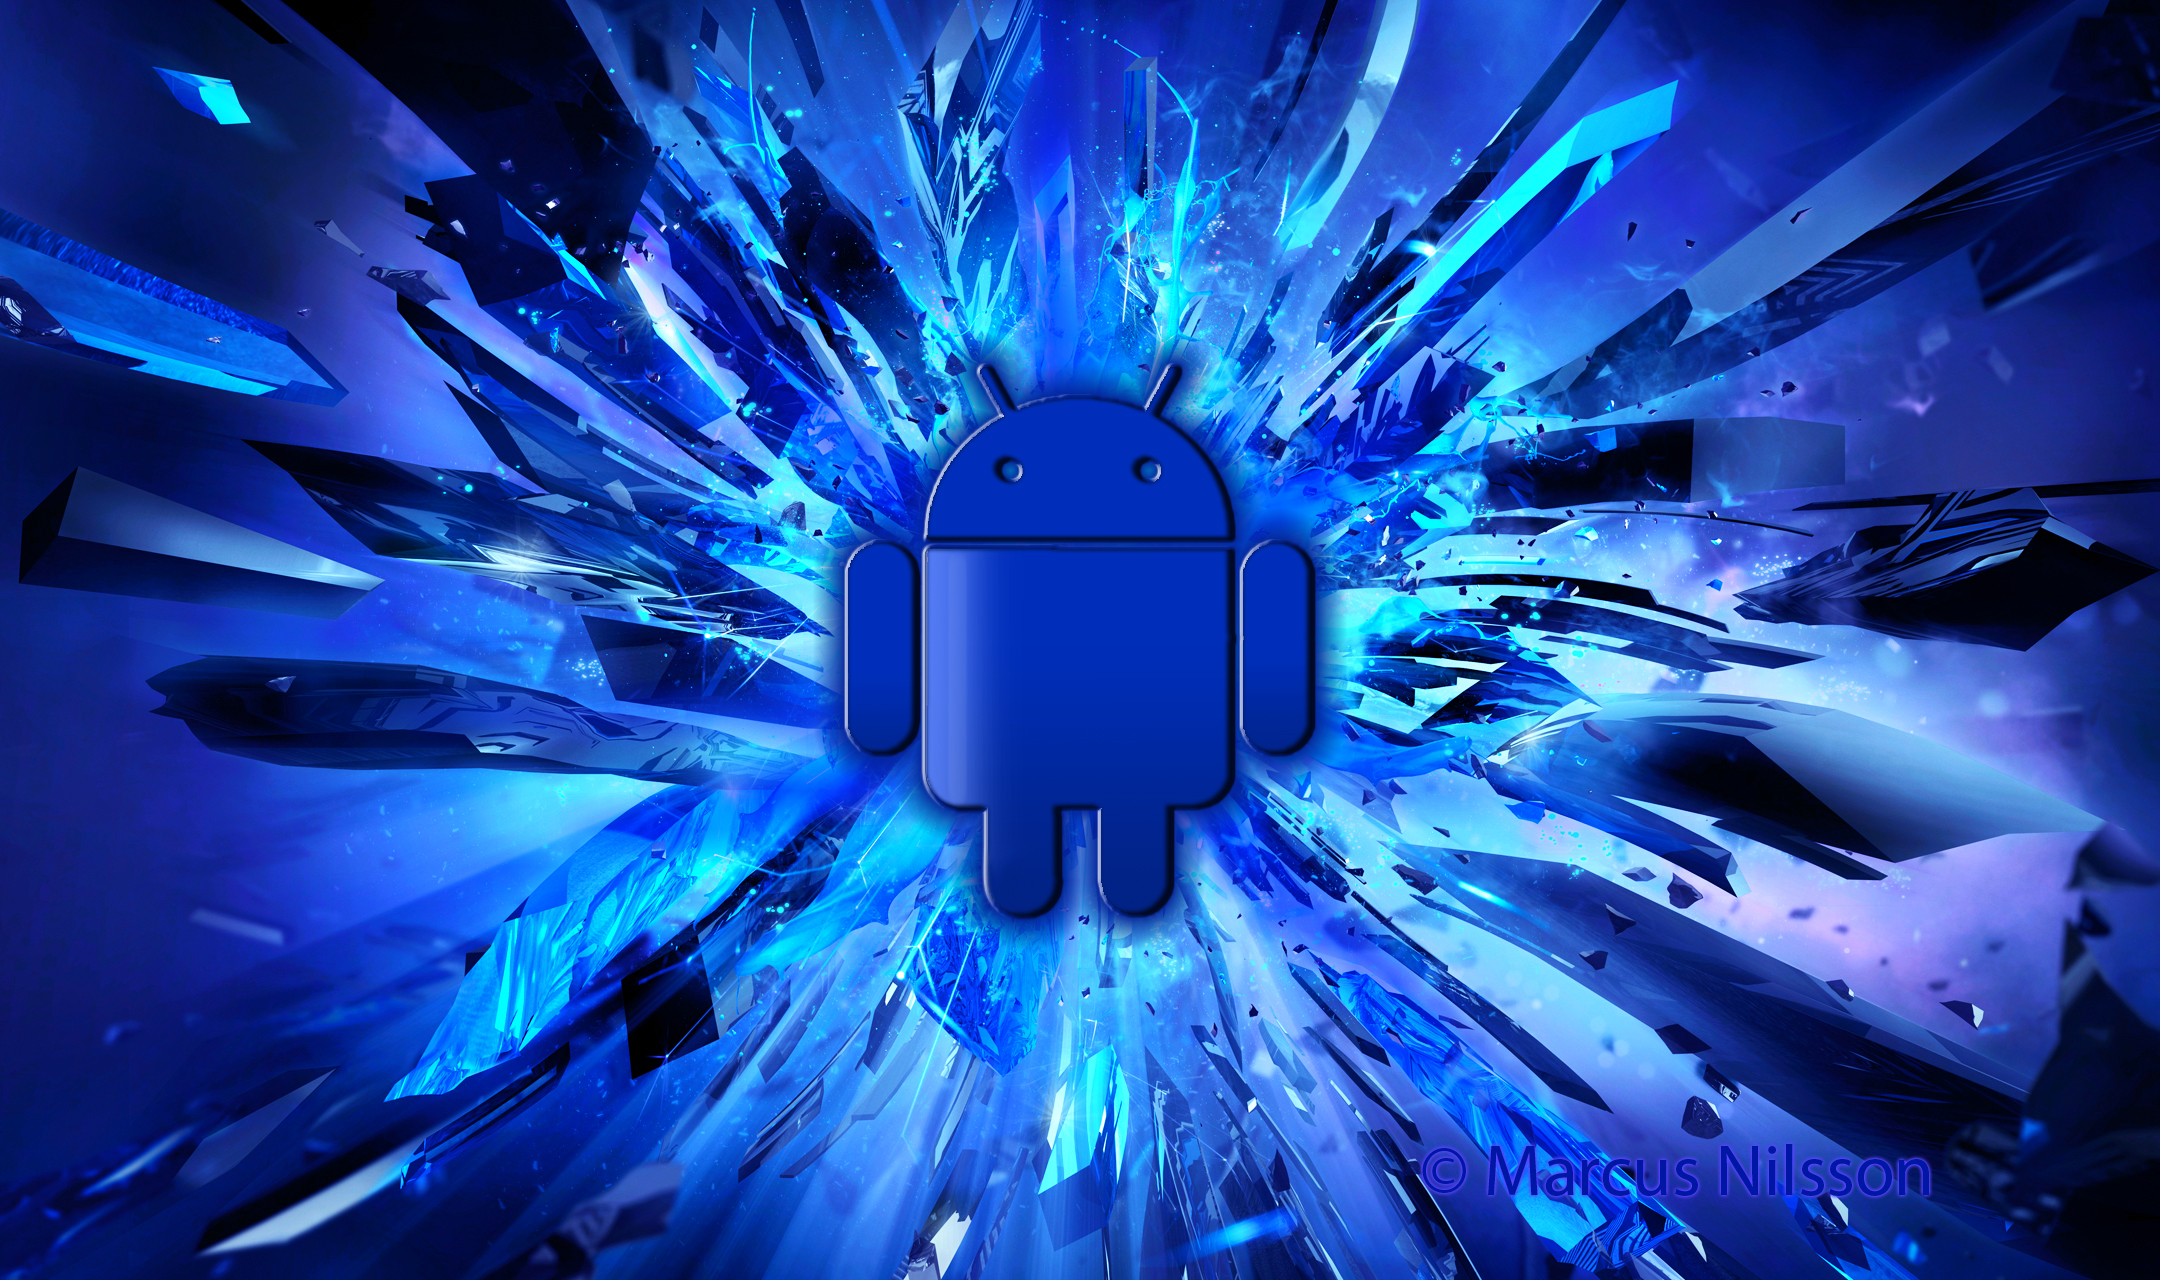 Blue android wallpaper Funky Fresh Studio 2160x1280